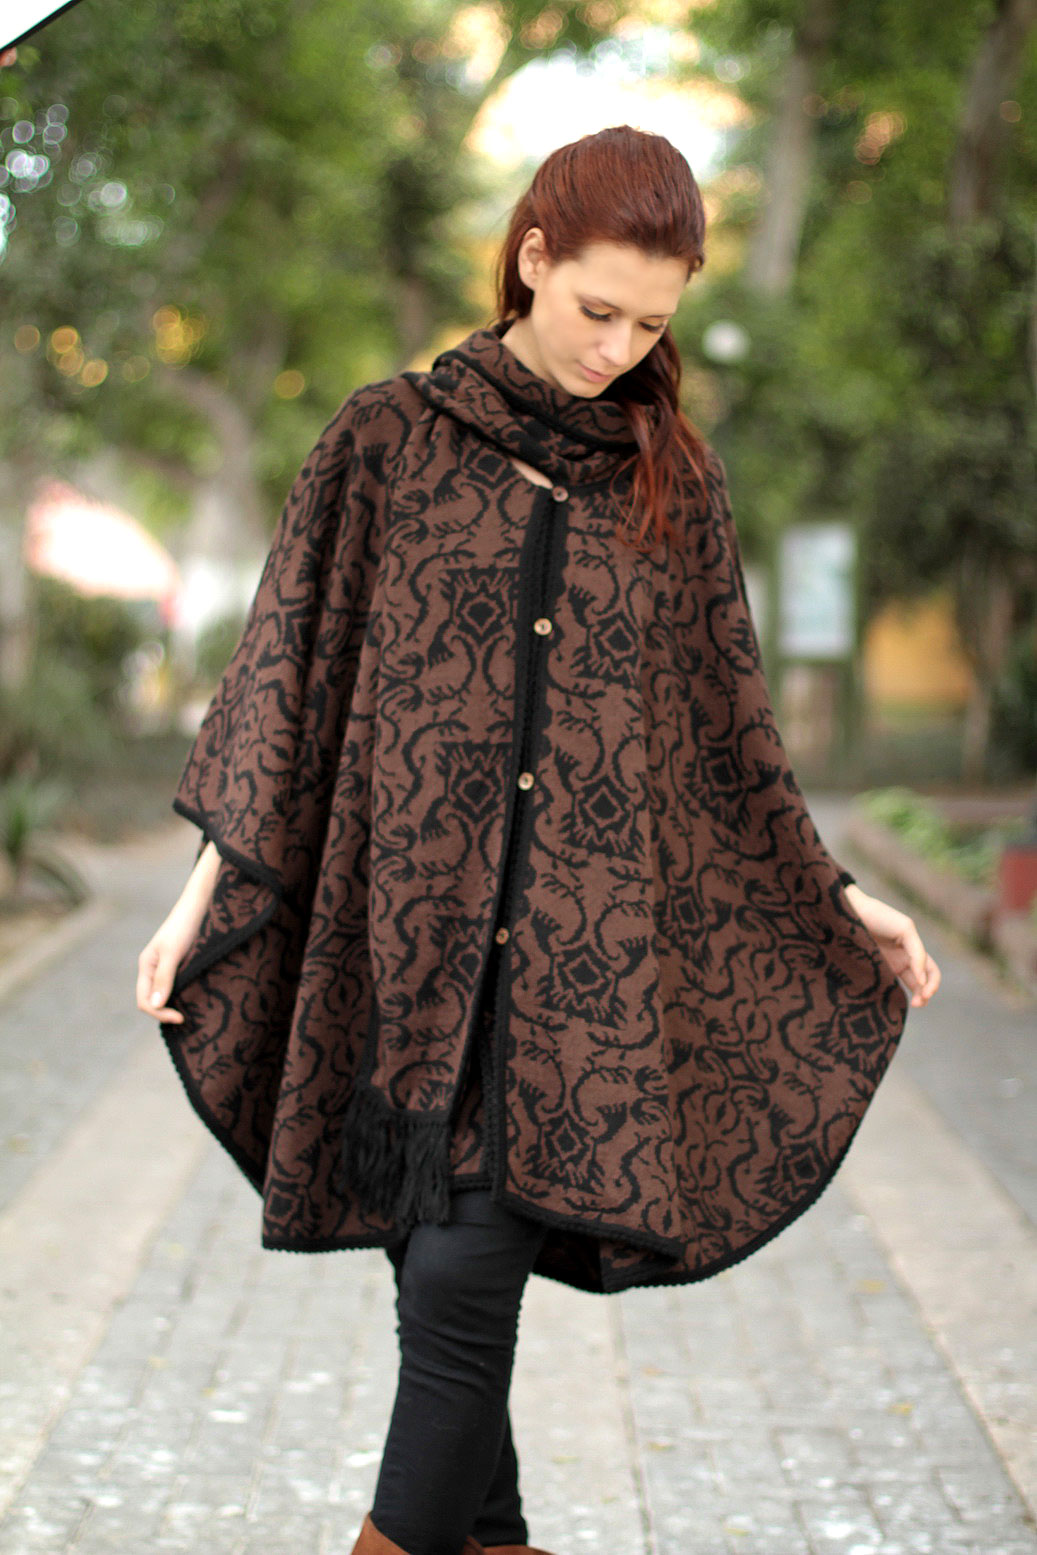 Piura Flora Hand Made Women's Alpaca Wool Blend Ruana Cloak Handmade Look cool and stay warm Stylish & Practical Winter Accessories